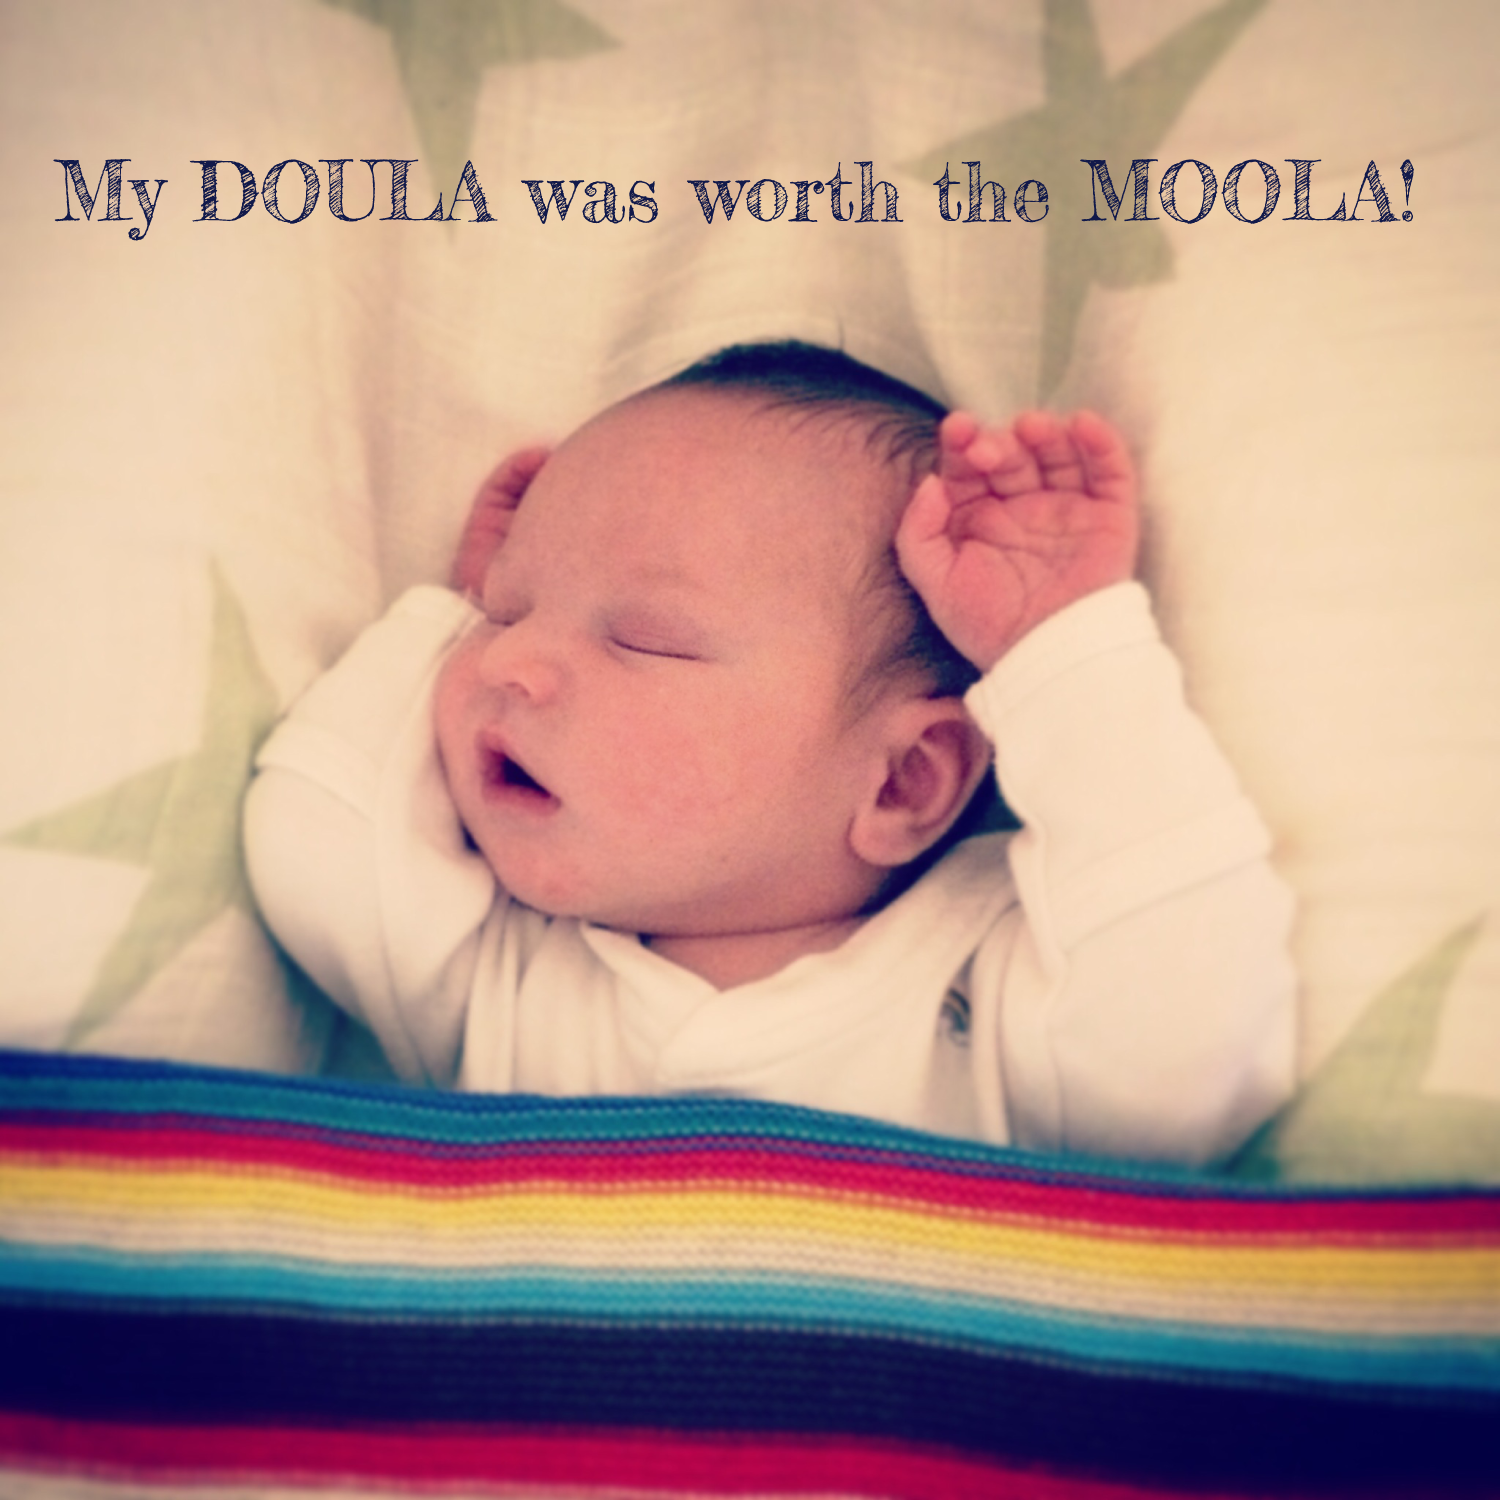 """Photo of sleeping baby with the text """"My DOULA was worth the MOOLA"""""""